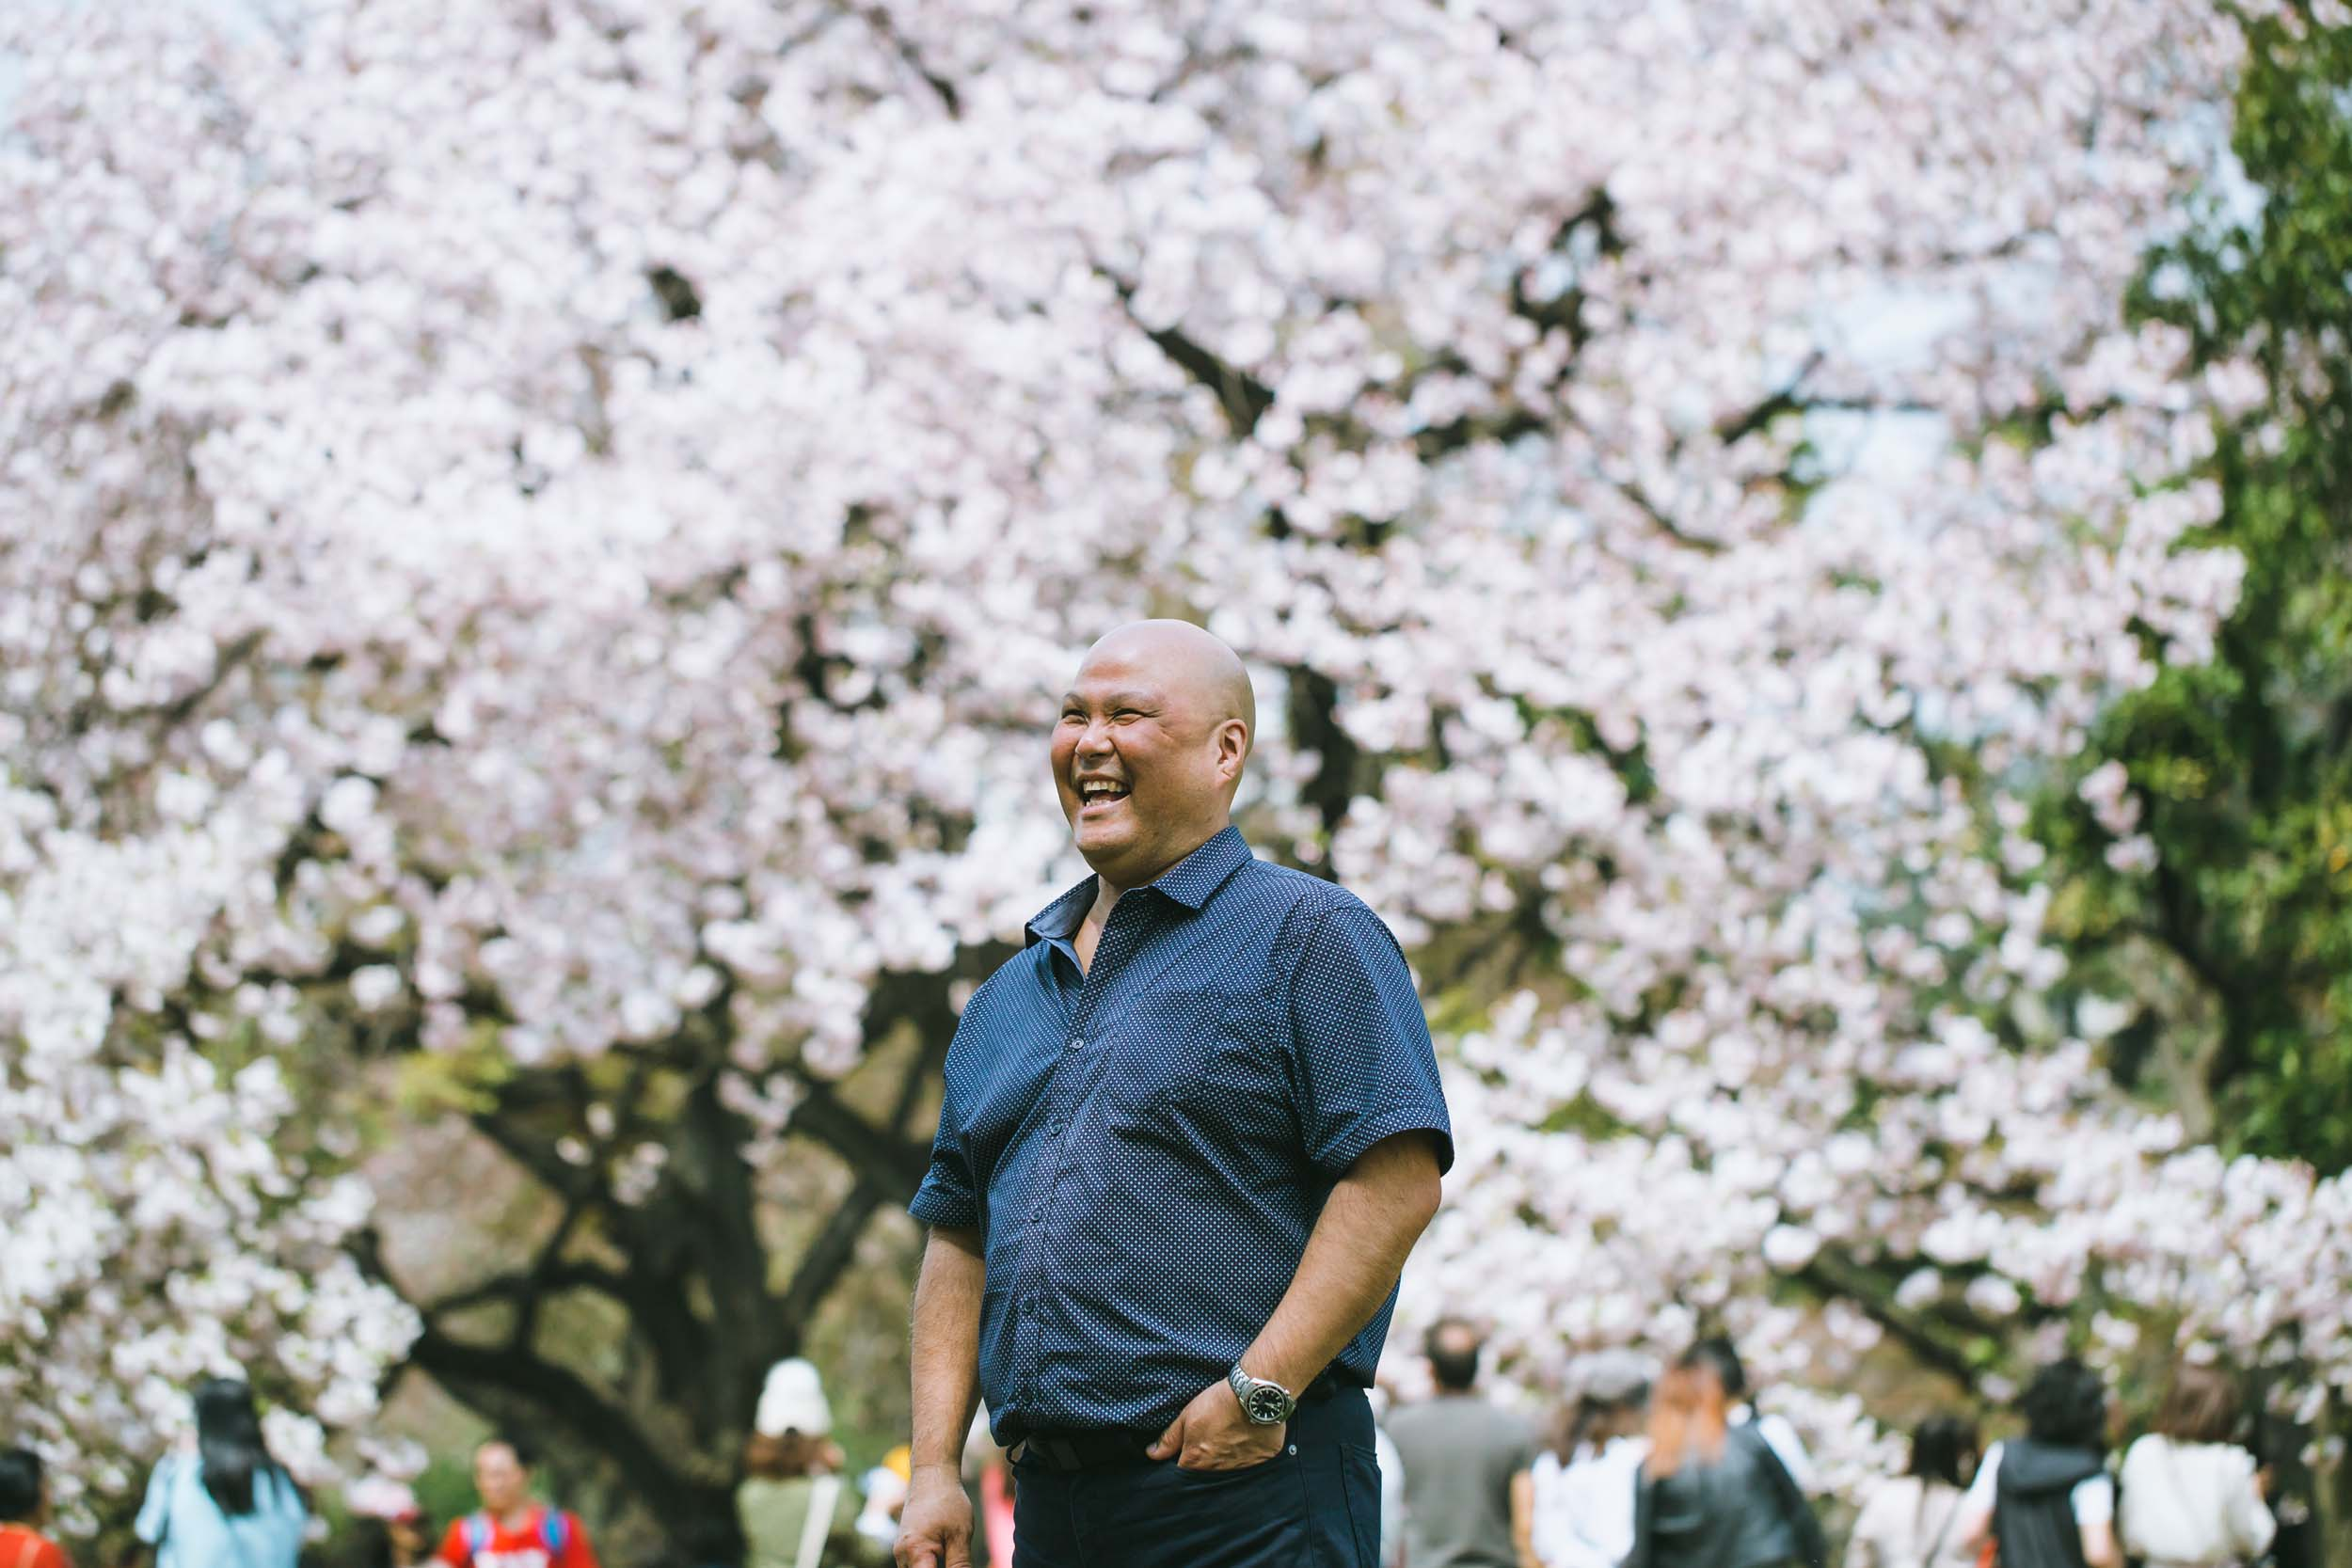 Cherry Blossom Season in Japan and What We Can Learn From It